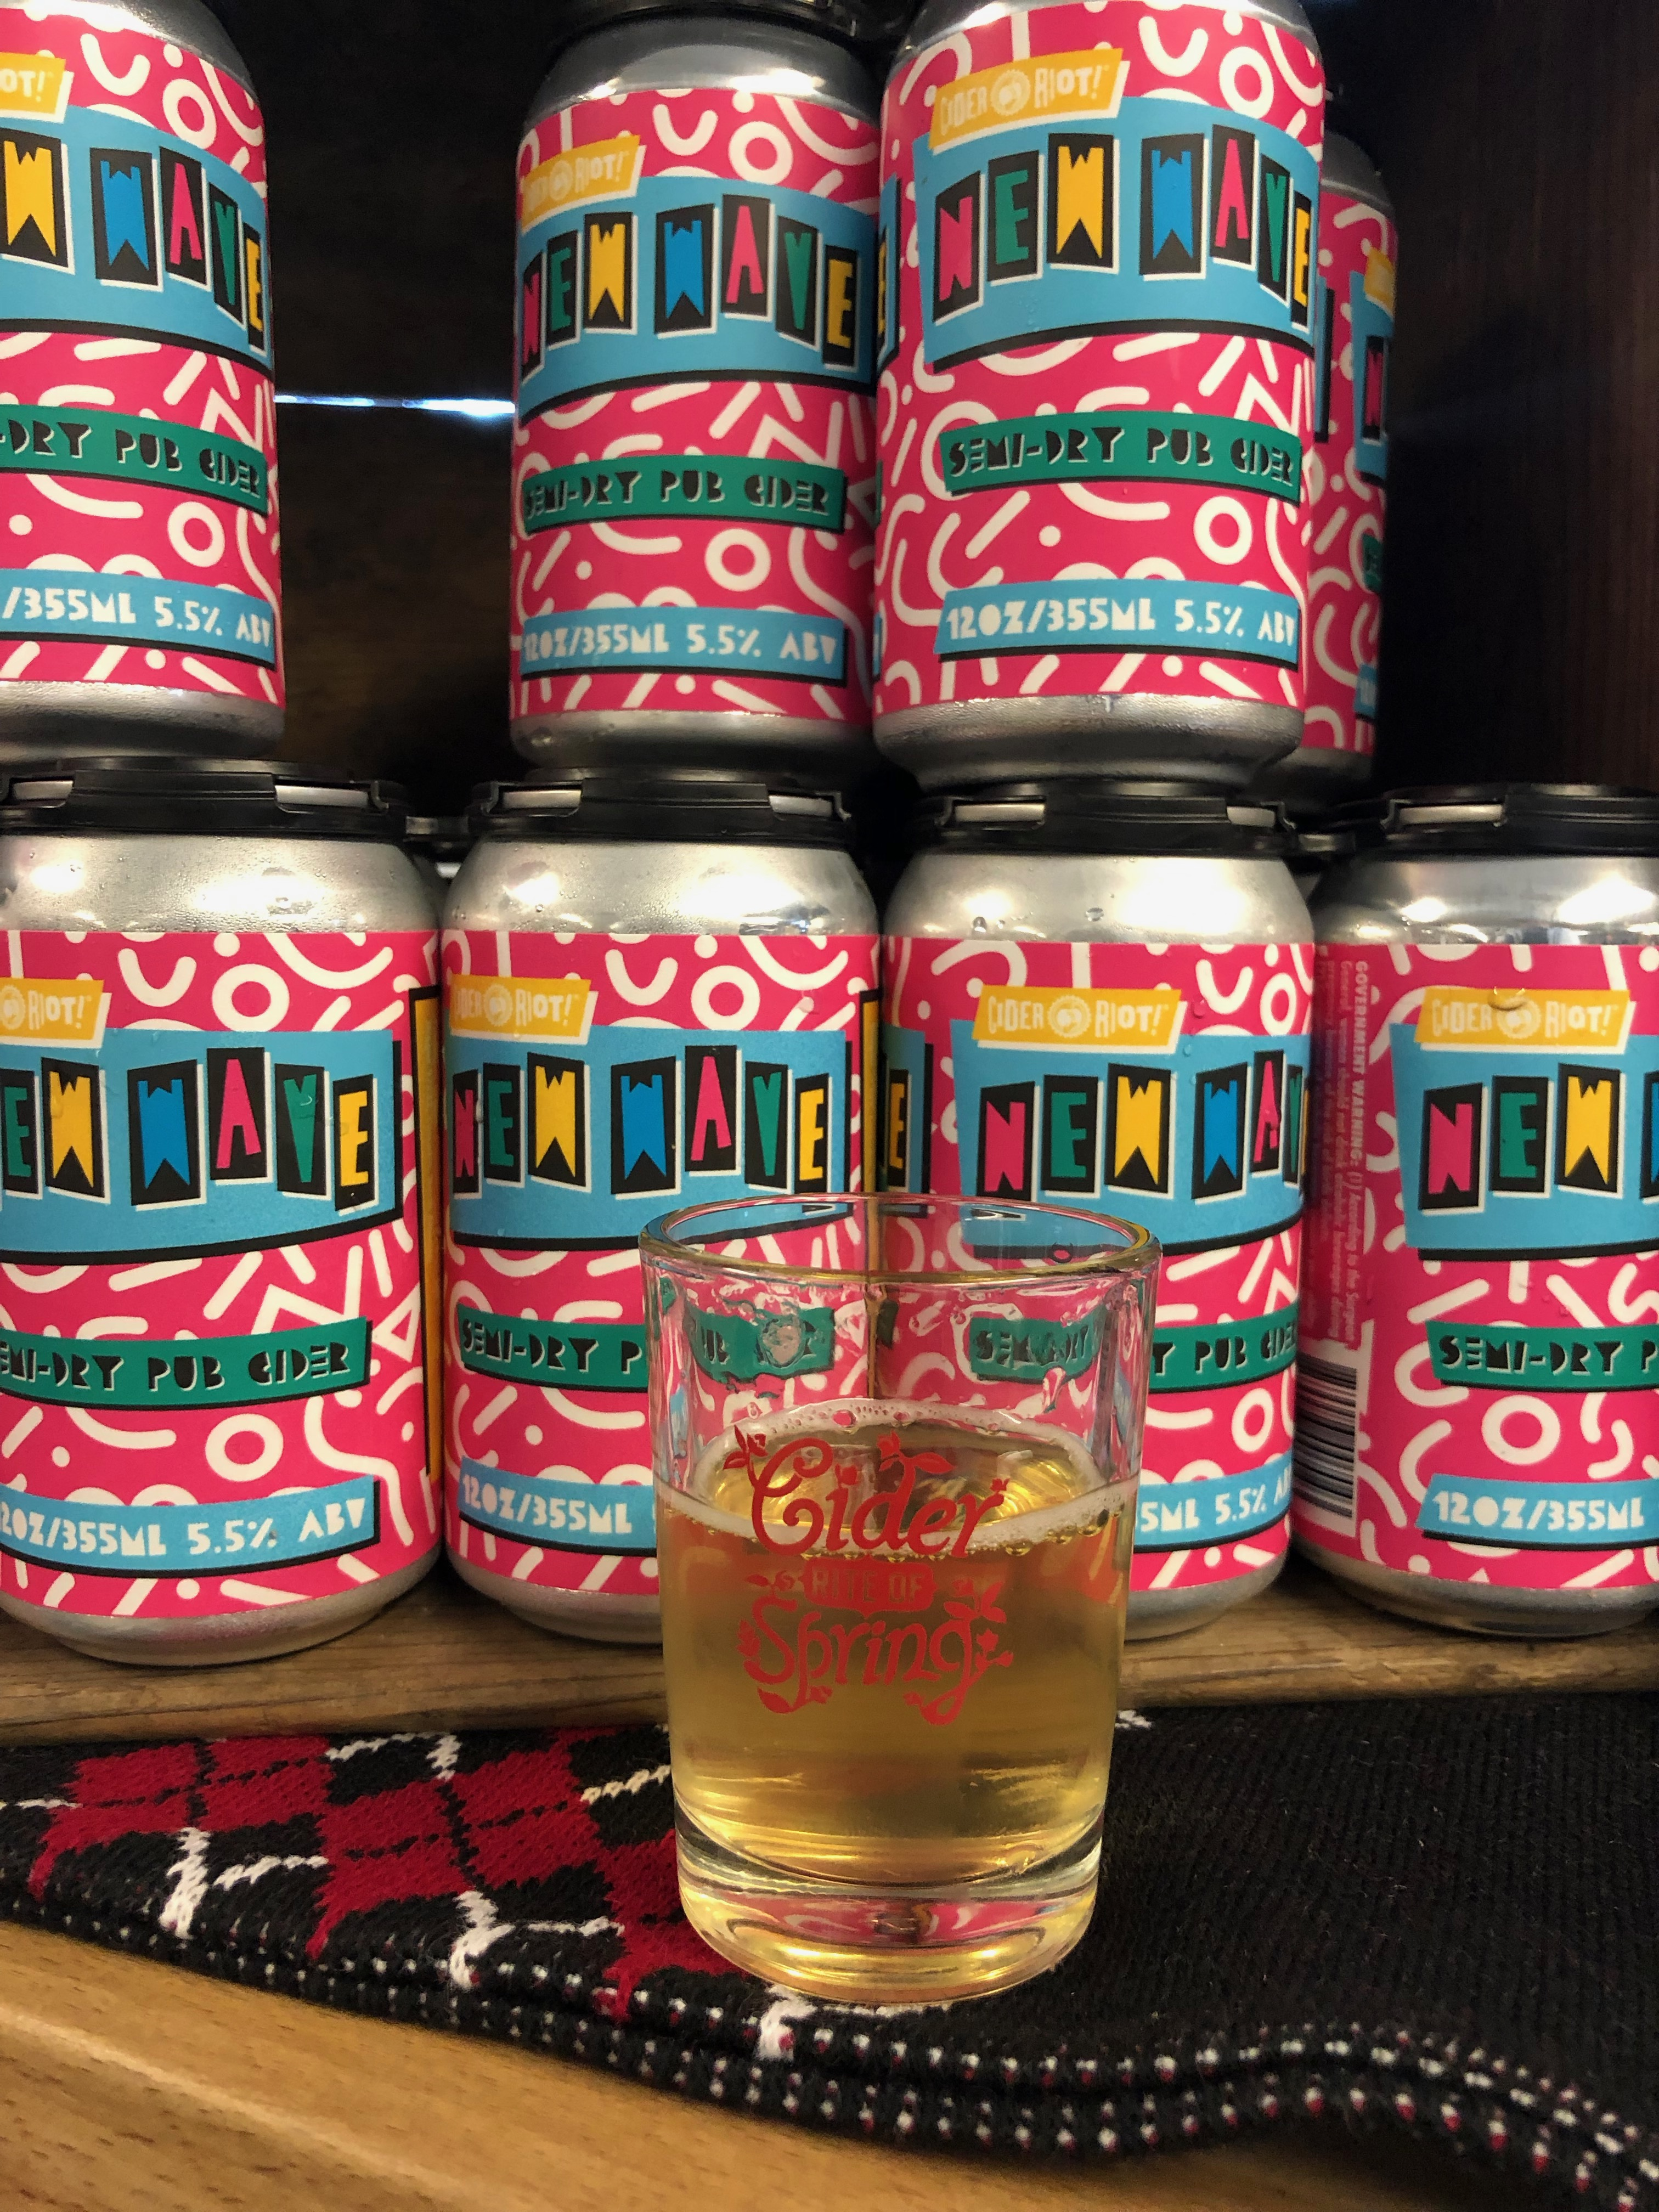 Cider Riot! recently released New Wave Semi-Dry Pub Cider in 12 ounce cans.